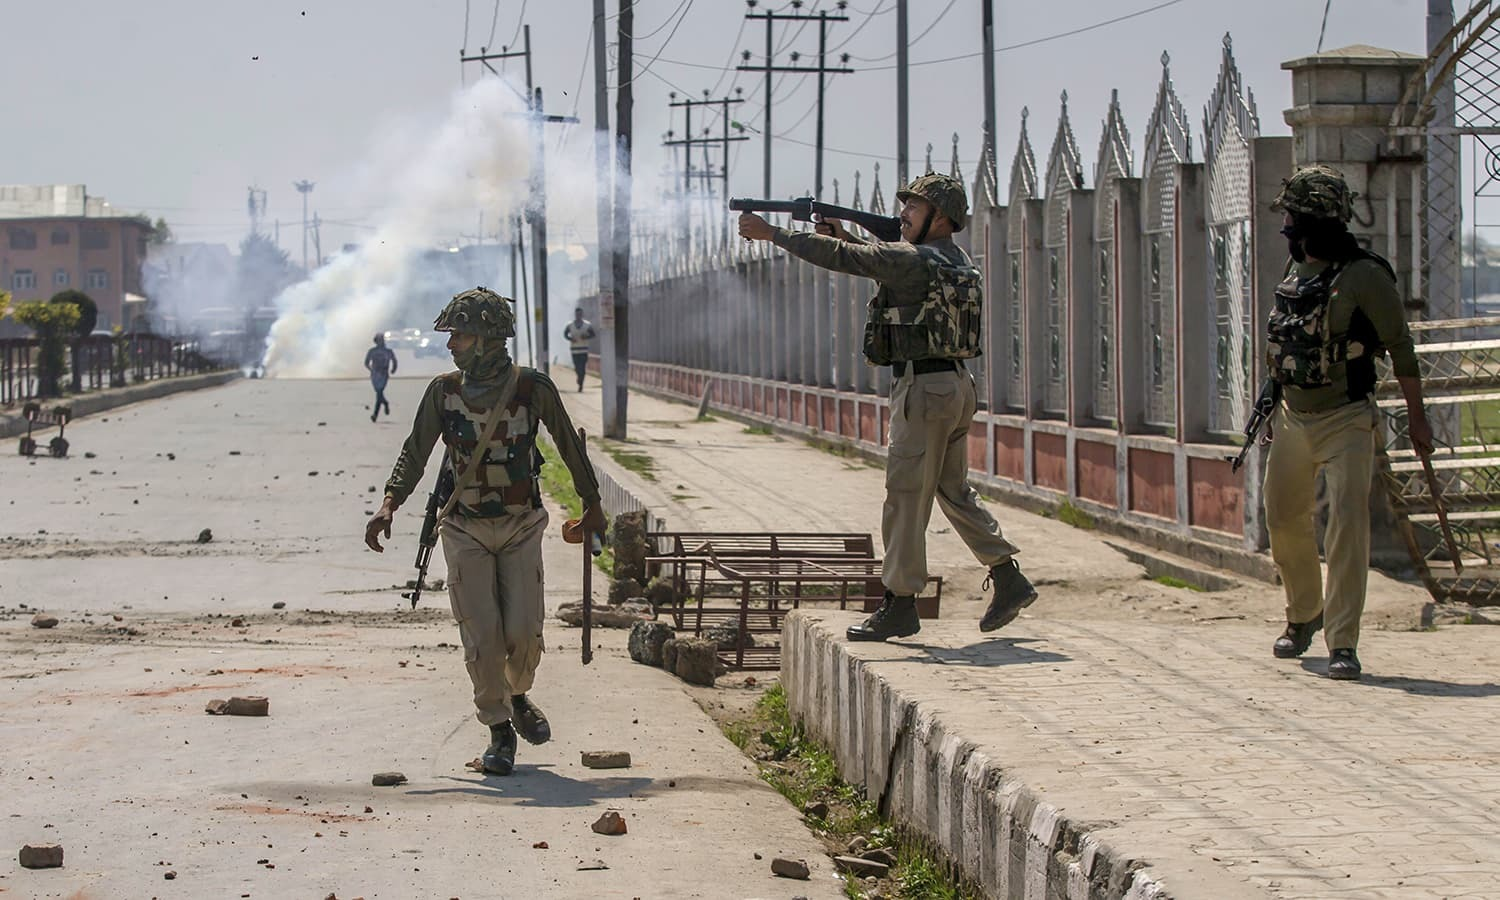 Indian paramilitary soldier fires tear gas shell towards a Kashmiri protester during a protest in Srinagar. — AP/File